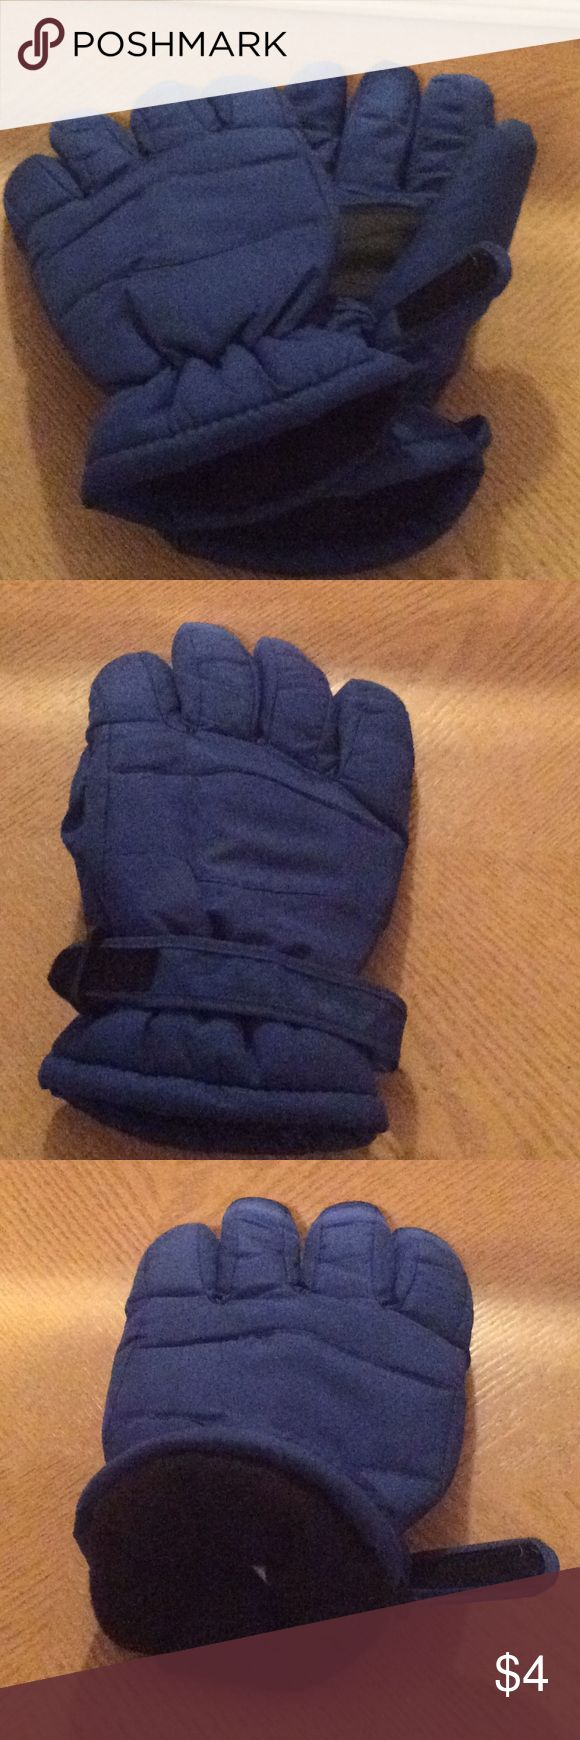 Men's insulated Winter Gloves Blue insulated gloves Accessories Gloves